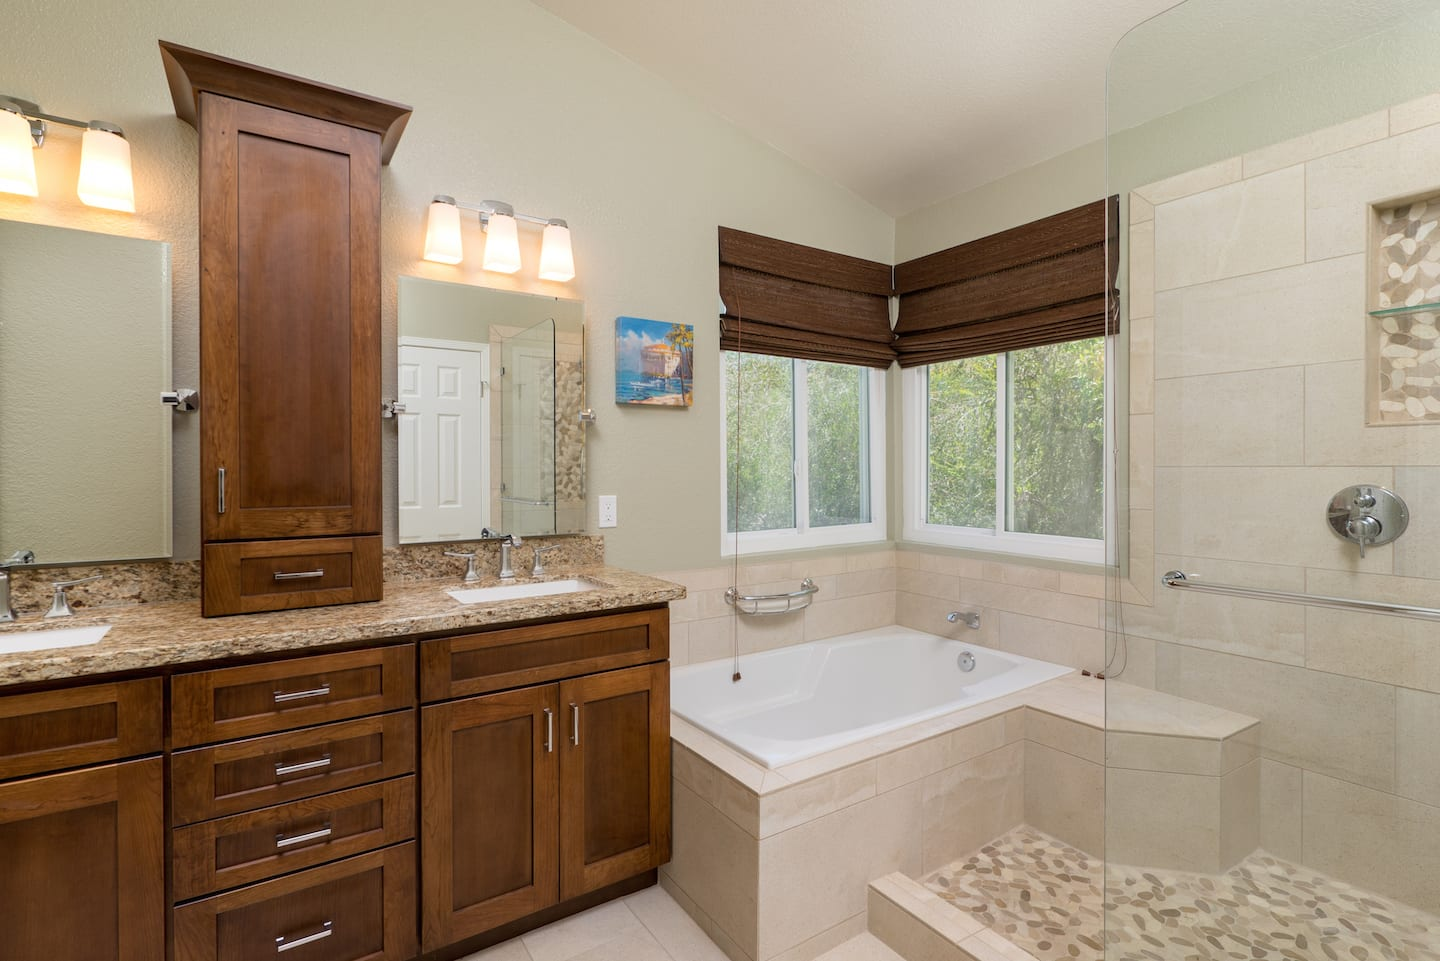 Remodeled Bathroom Bathroom Remodeling  Planning And Hiring  Angie's List